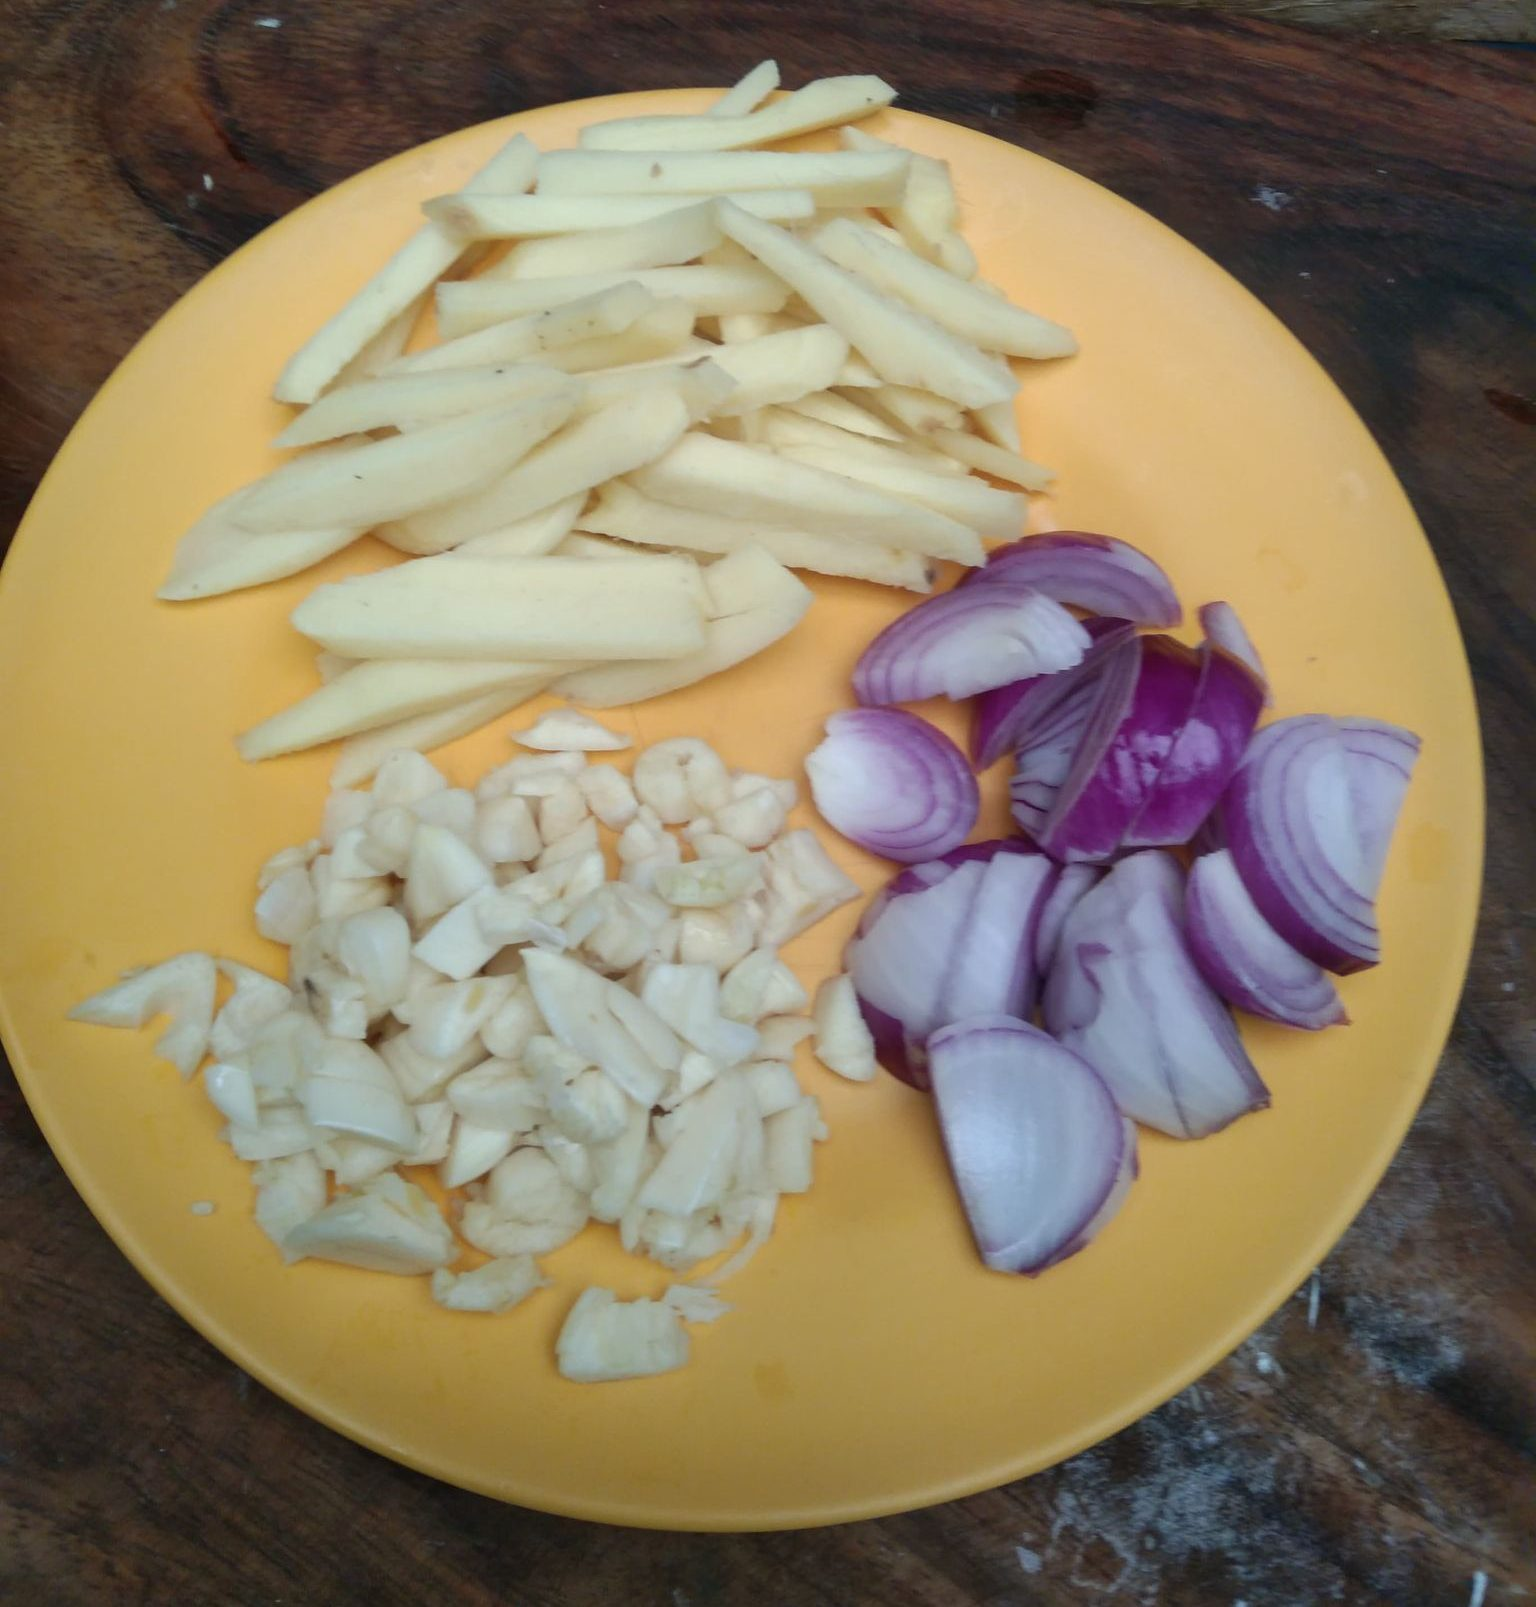 Chopped onions, garlic, and ginger on a yellow plate.